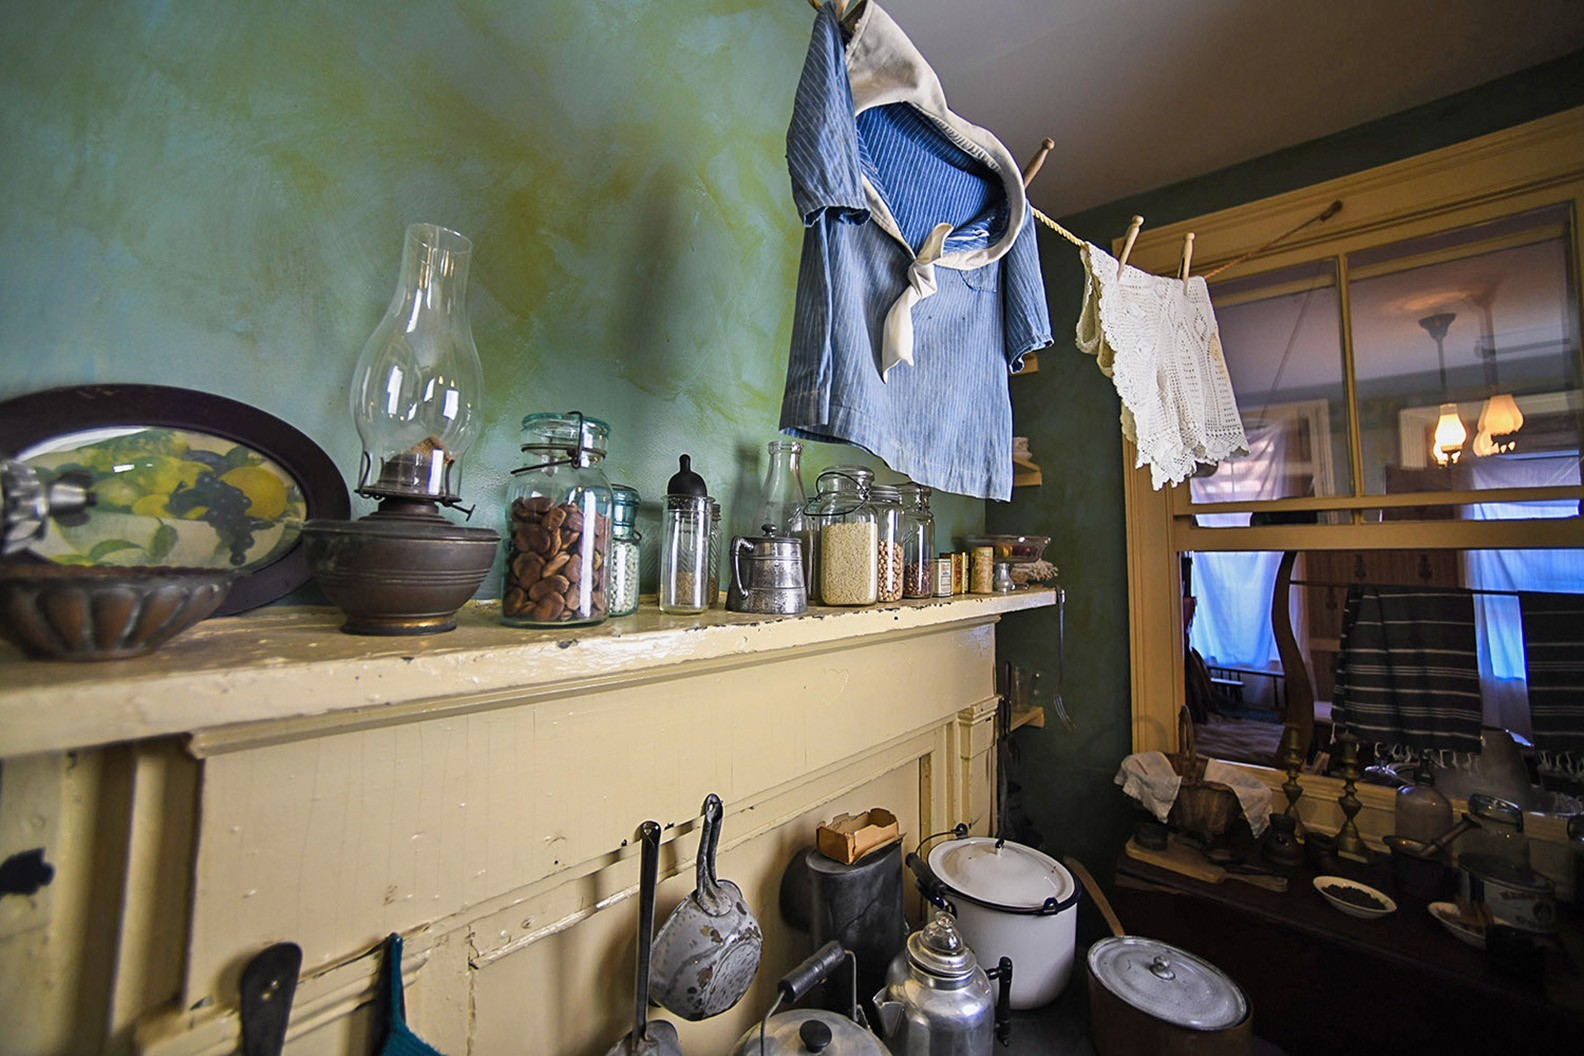 The mantle and clothesline inside the Confino family kitchen